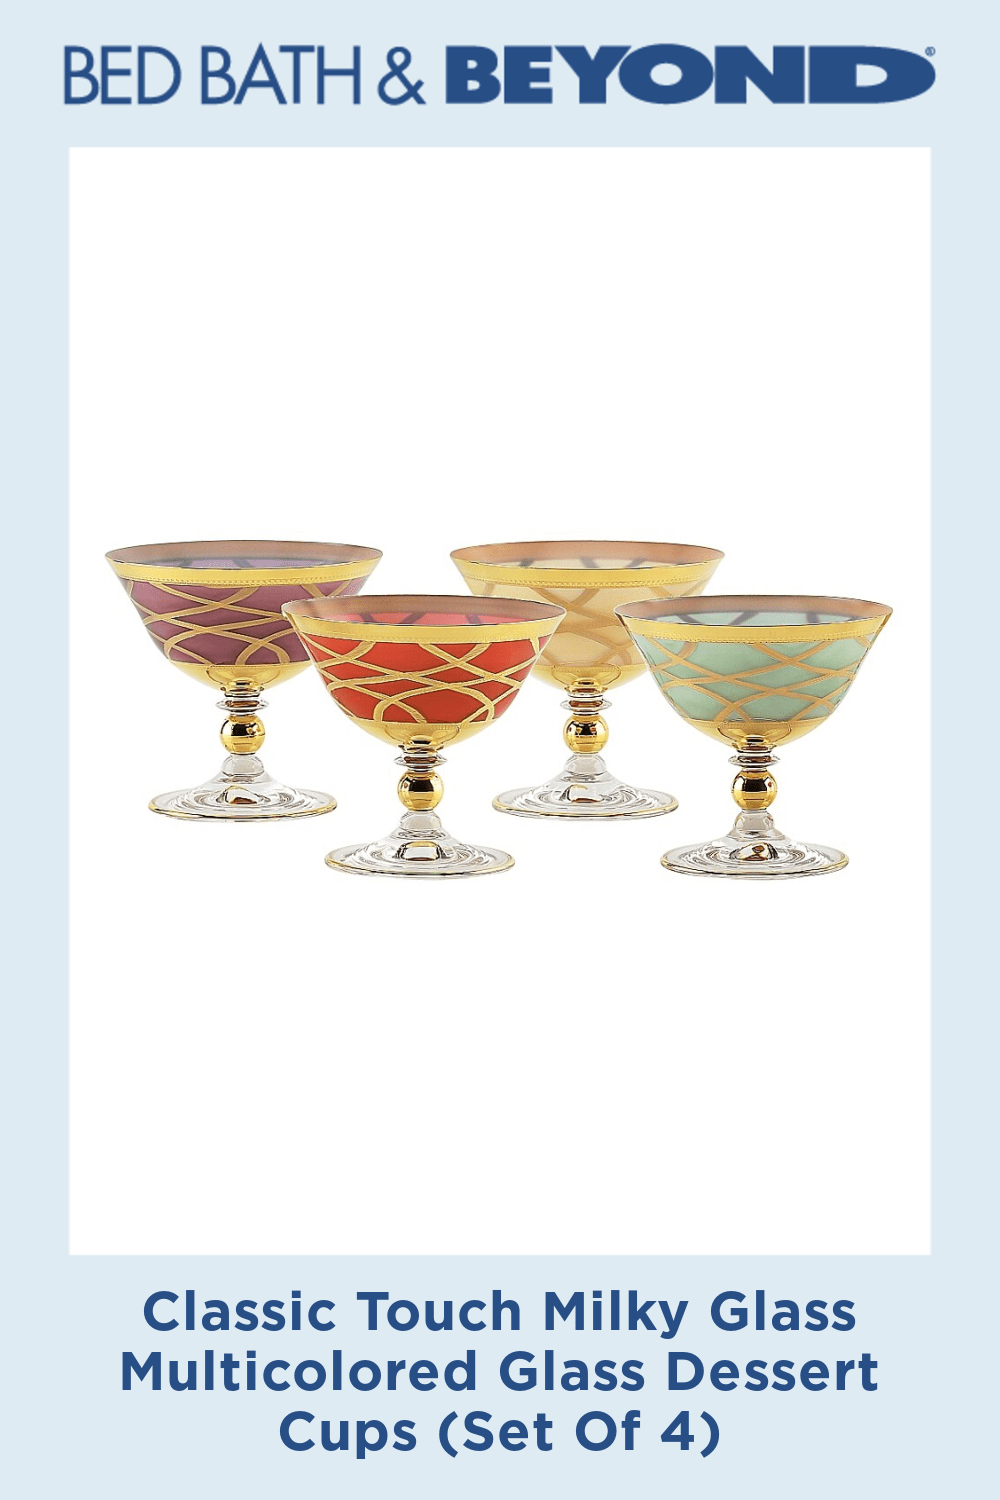 Classic Touch Milky Glass Multicolored Glass Dessert Cups Set Of 4 In 2020 Dessert Cups Cupping Set Glass